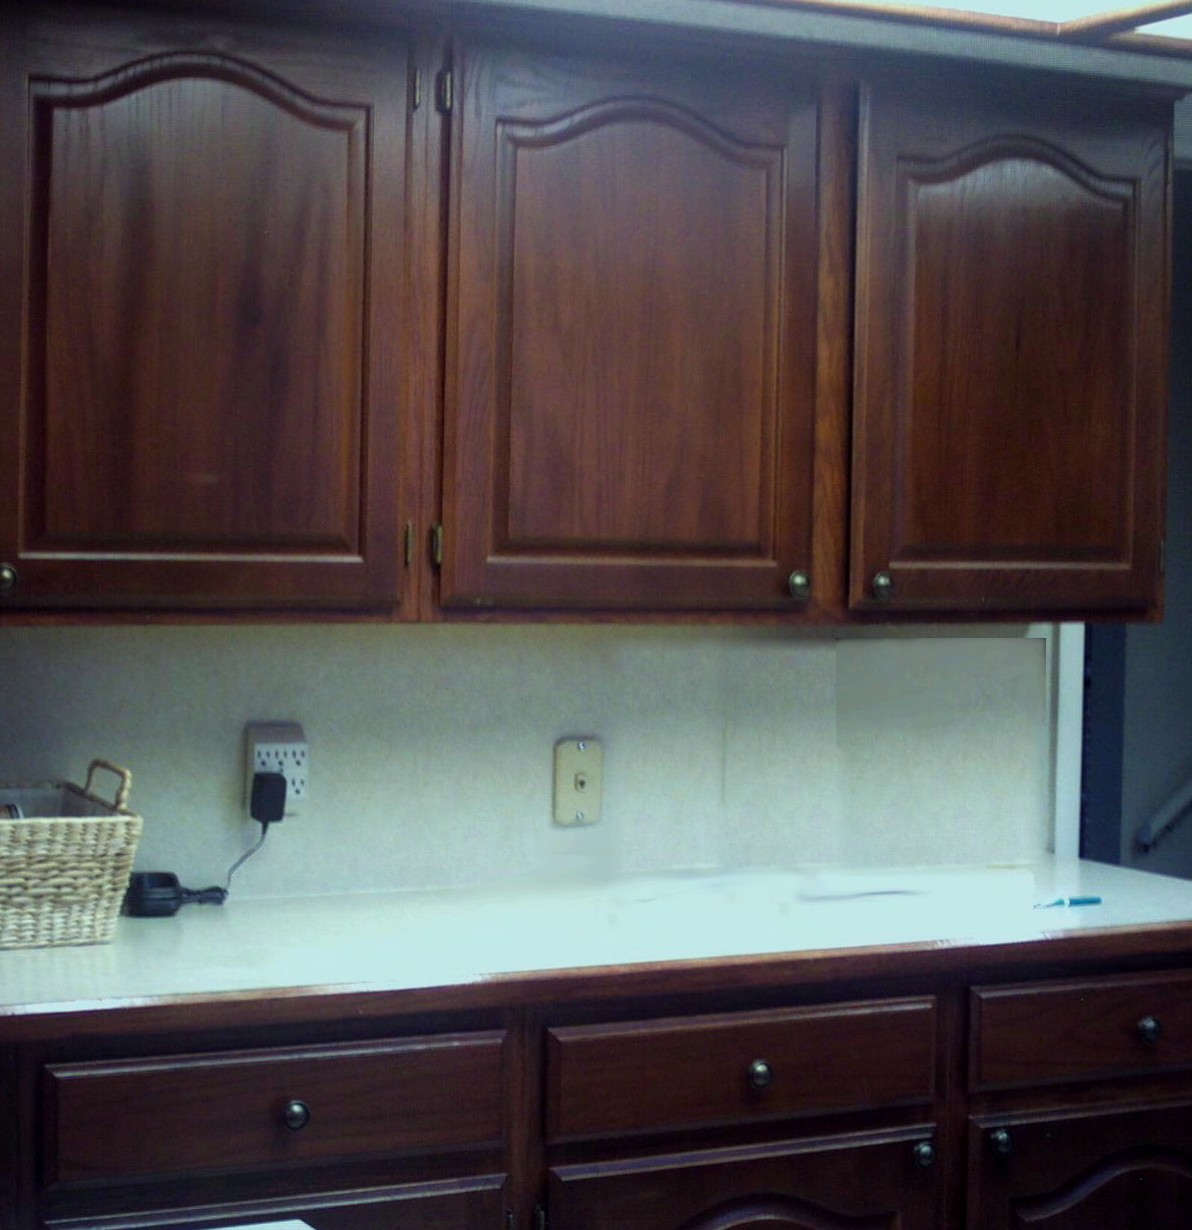 dark cabinet refinishing kitchen cabinet refinishing Kitchen cabinets and cupboards refinished in cherry wood color